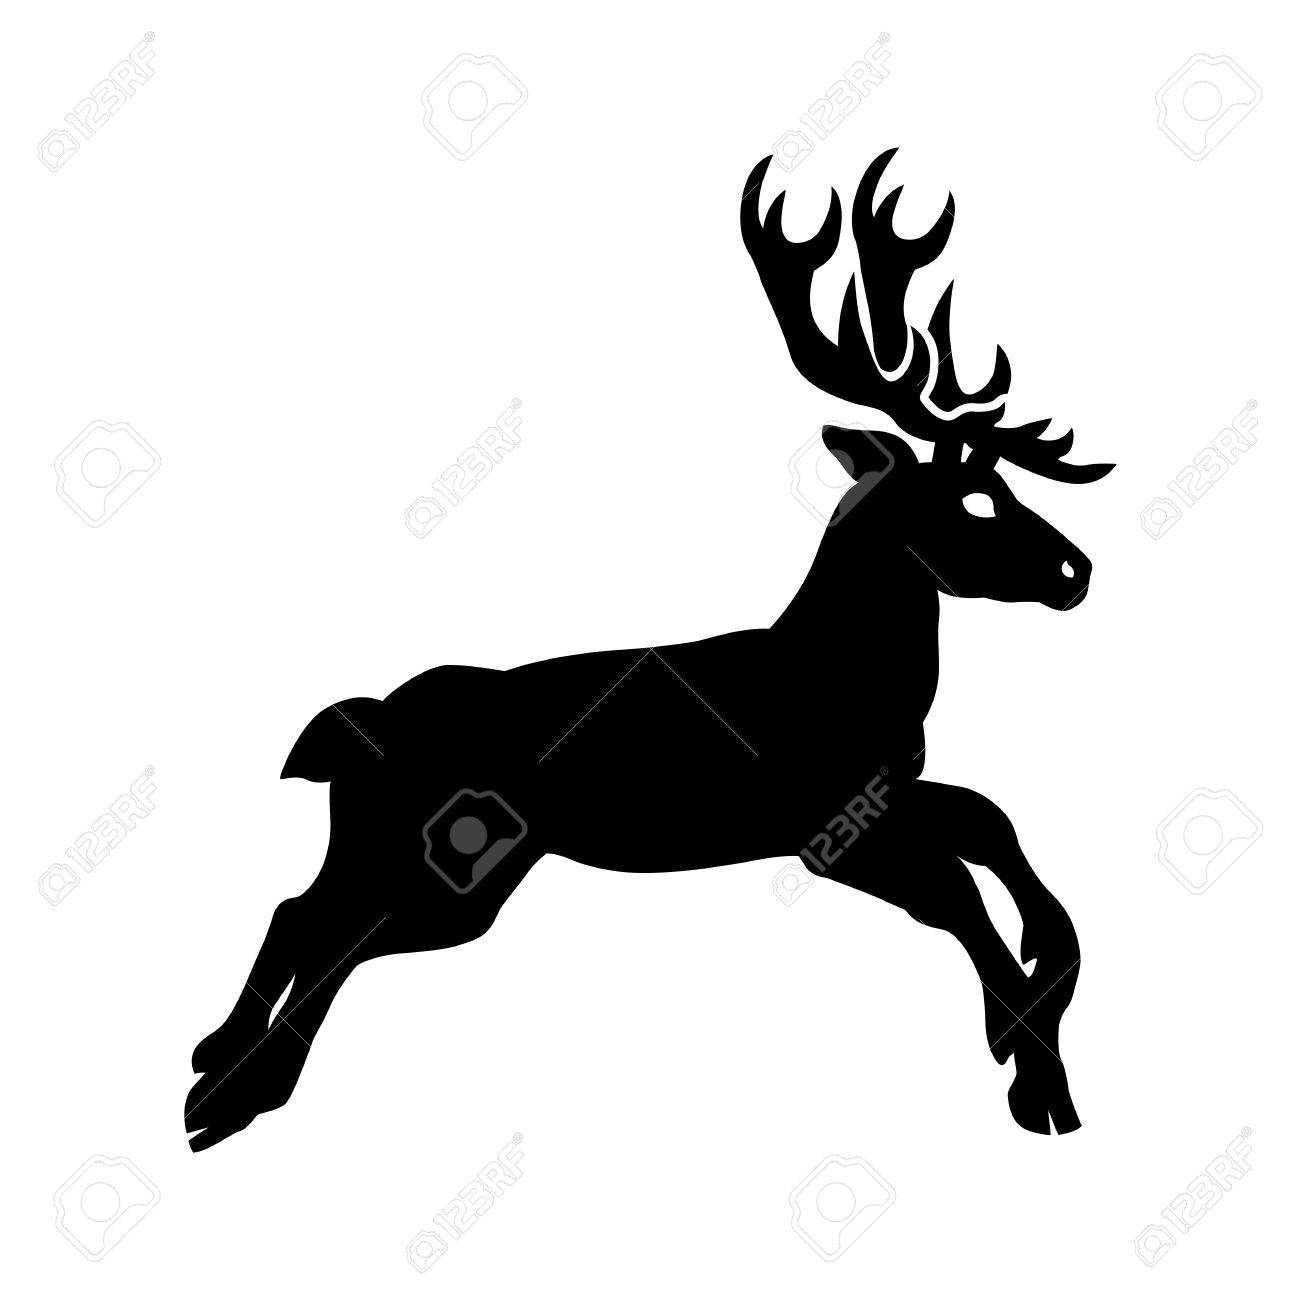 vector silhouette deer Stock Vector - 17105651